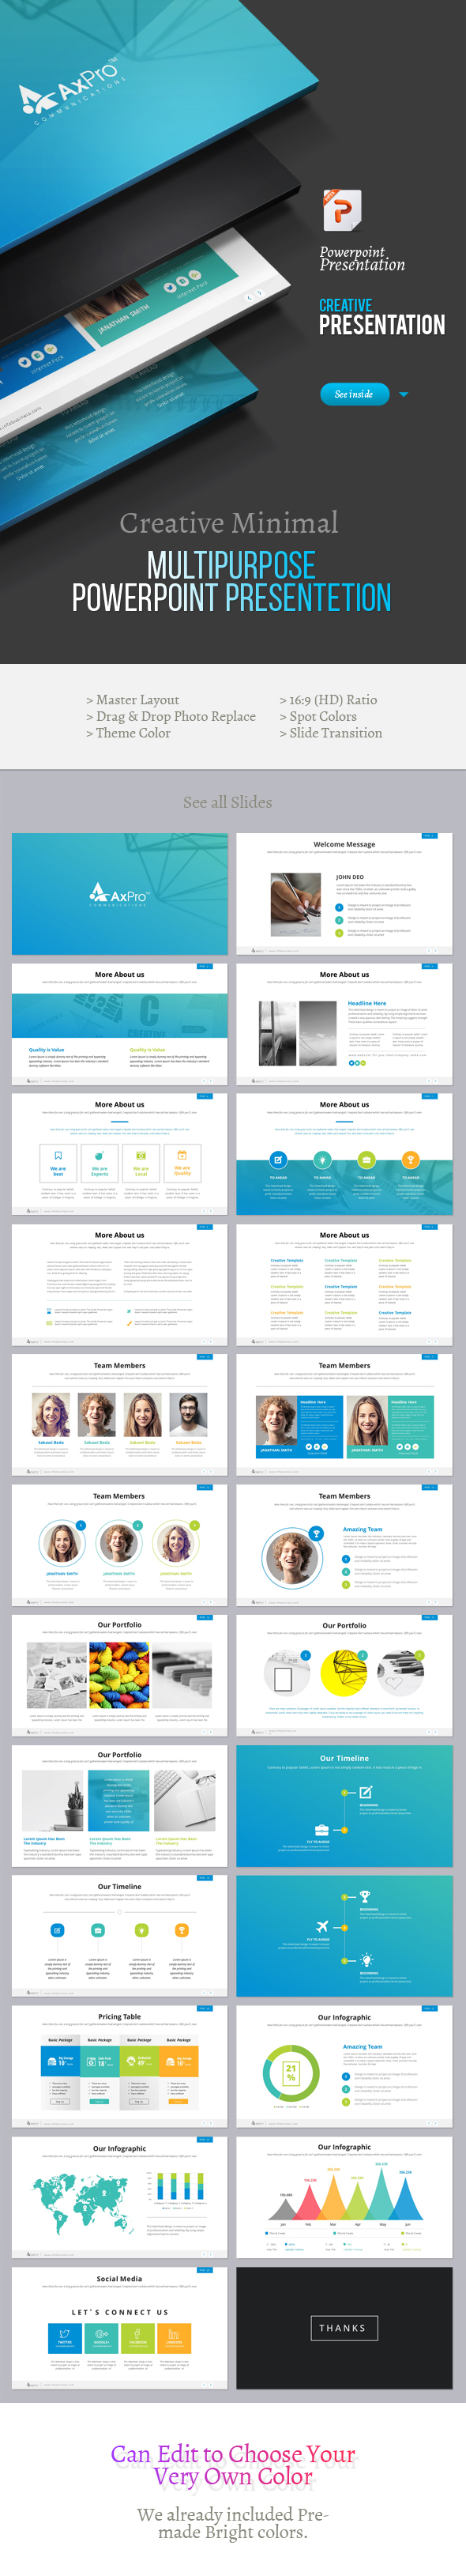 Creative Powerpoint Presentation - Creative PowerPoint Templates